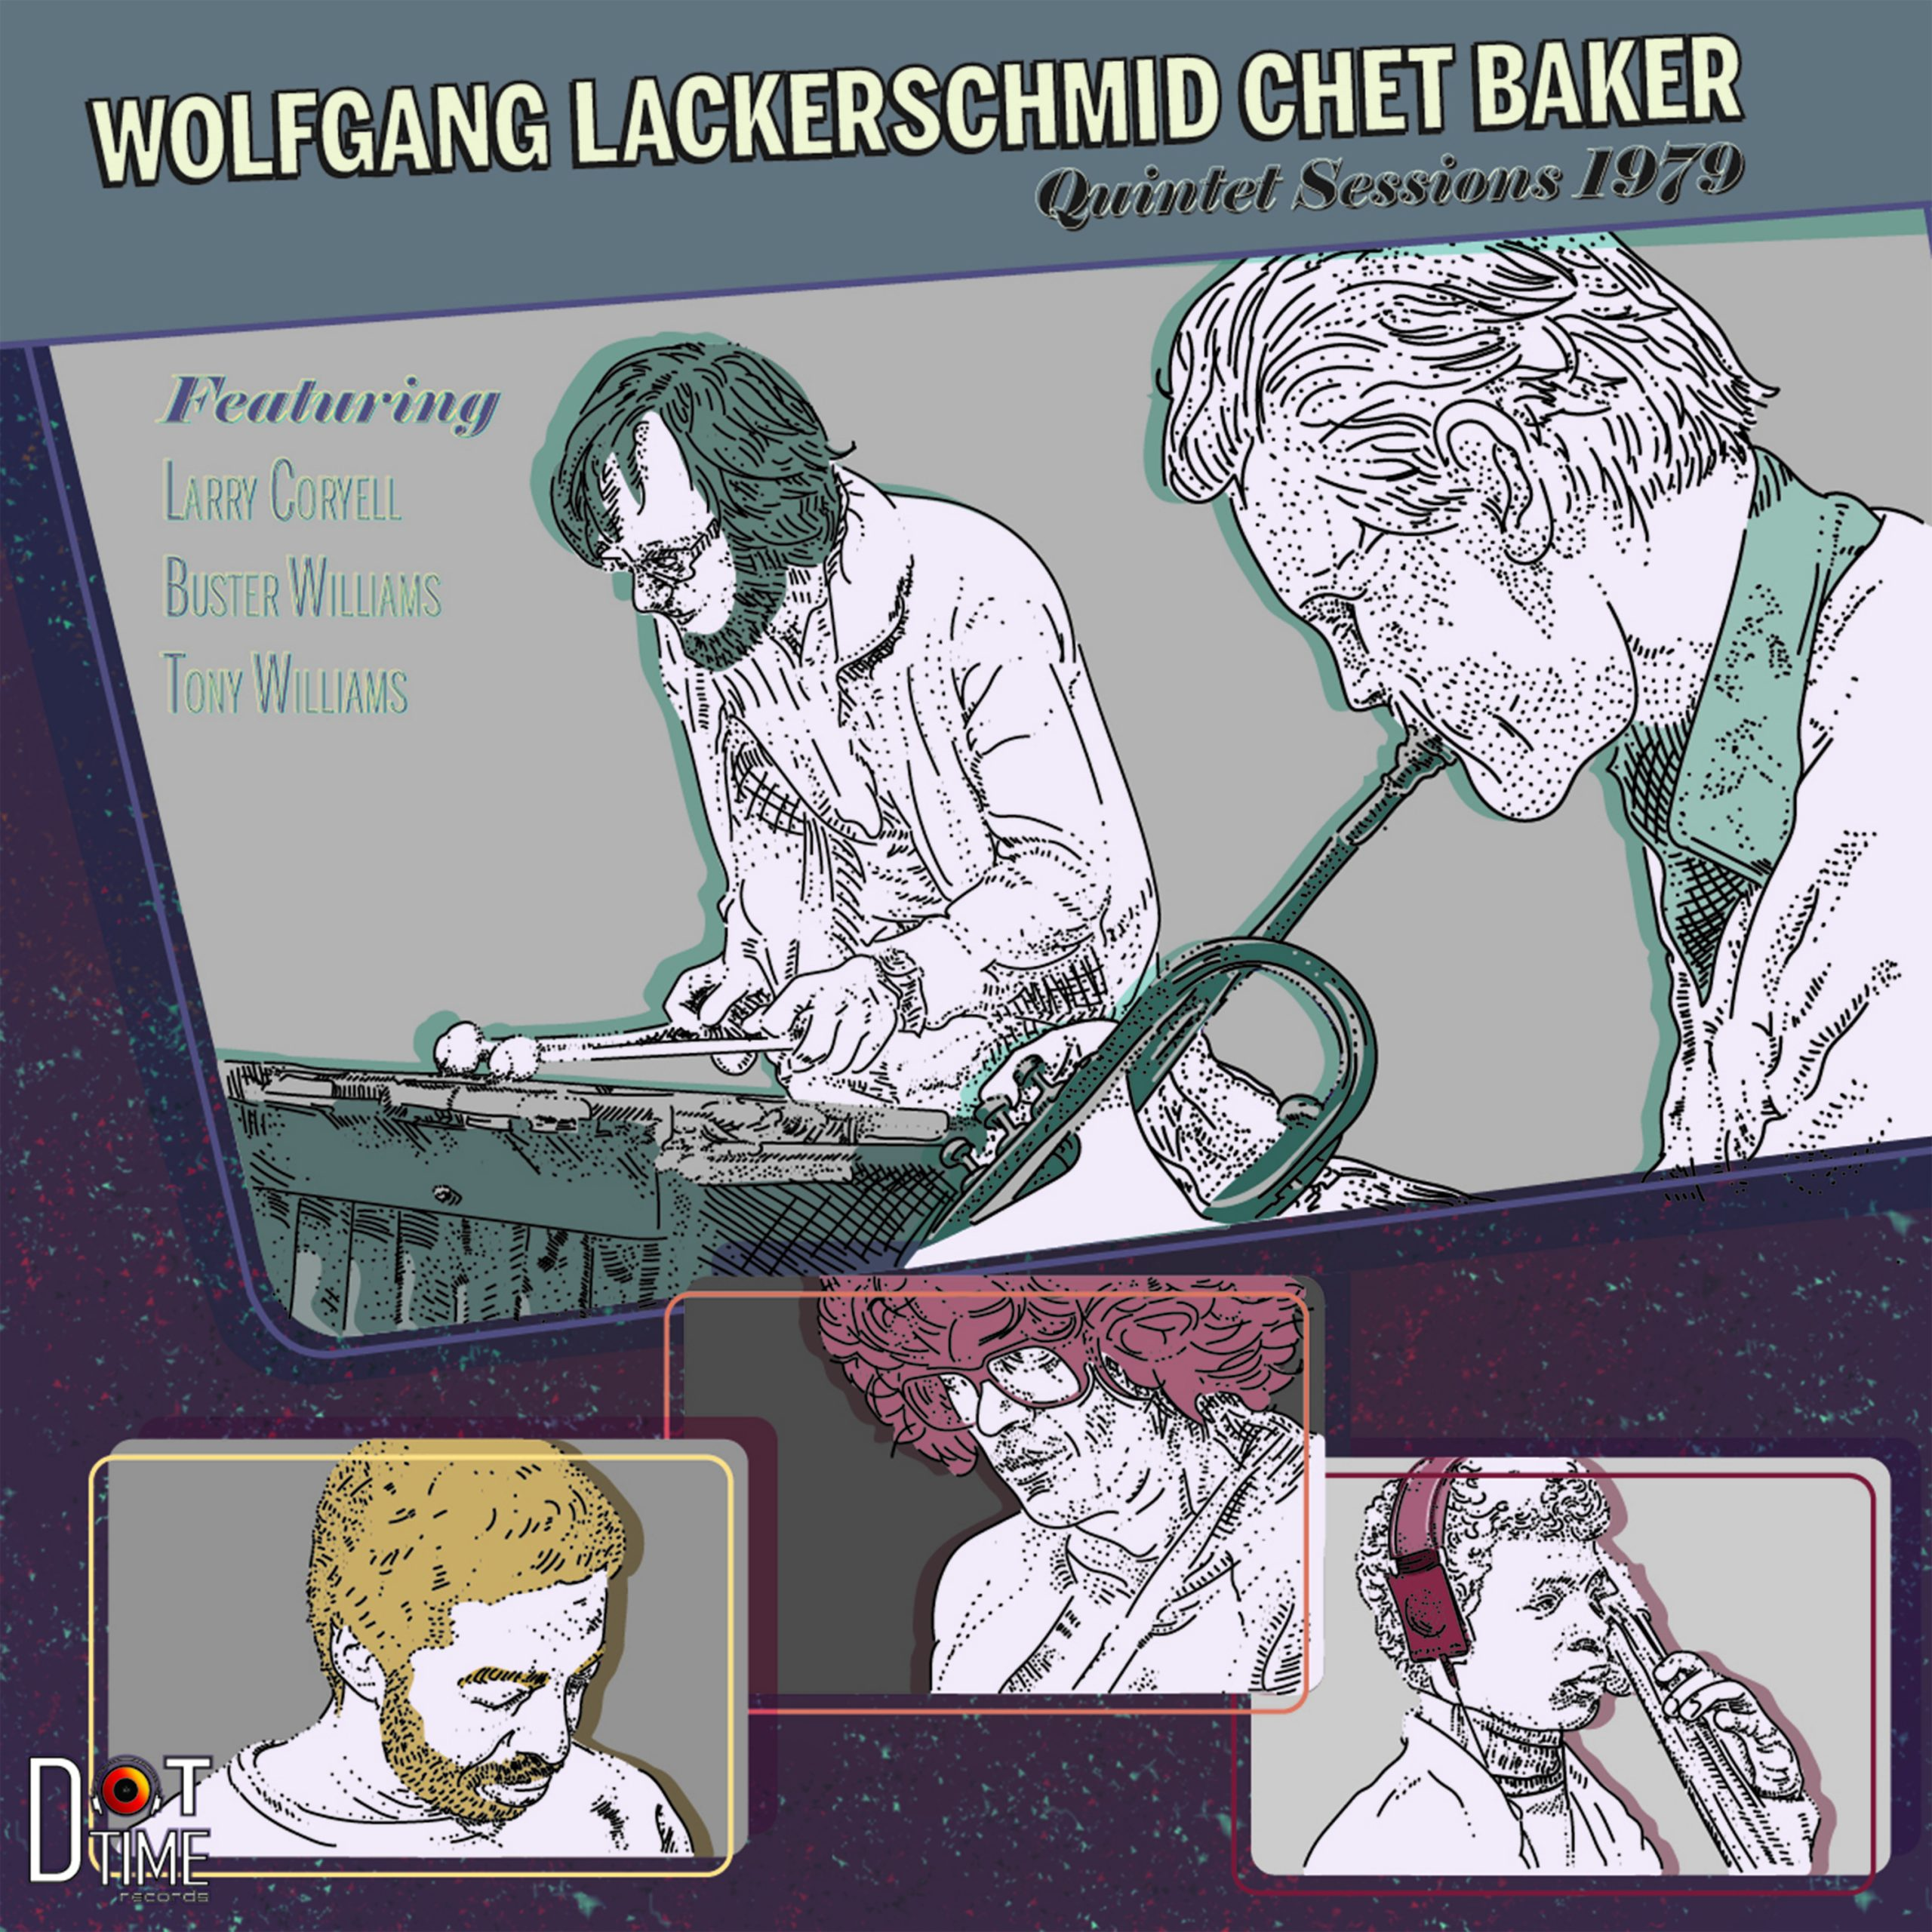 NEW RELEASE: Chet Baker & Wolfgang Lackerschmid's QUINTET SESSION out 11/13/20 via Dot Time